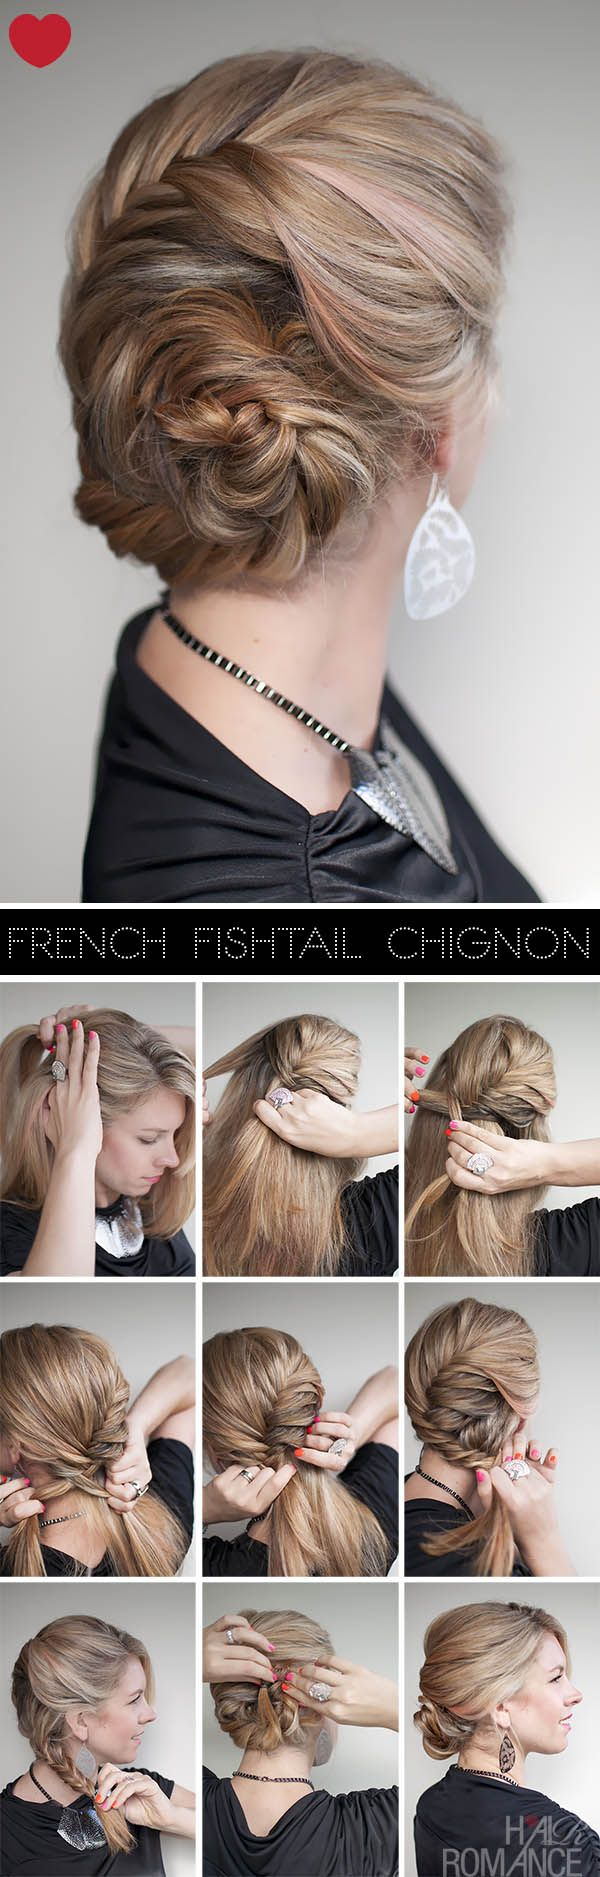 French Fishtail Braid Hairstyle Tutorial